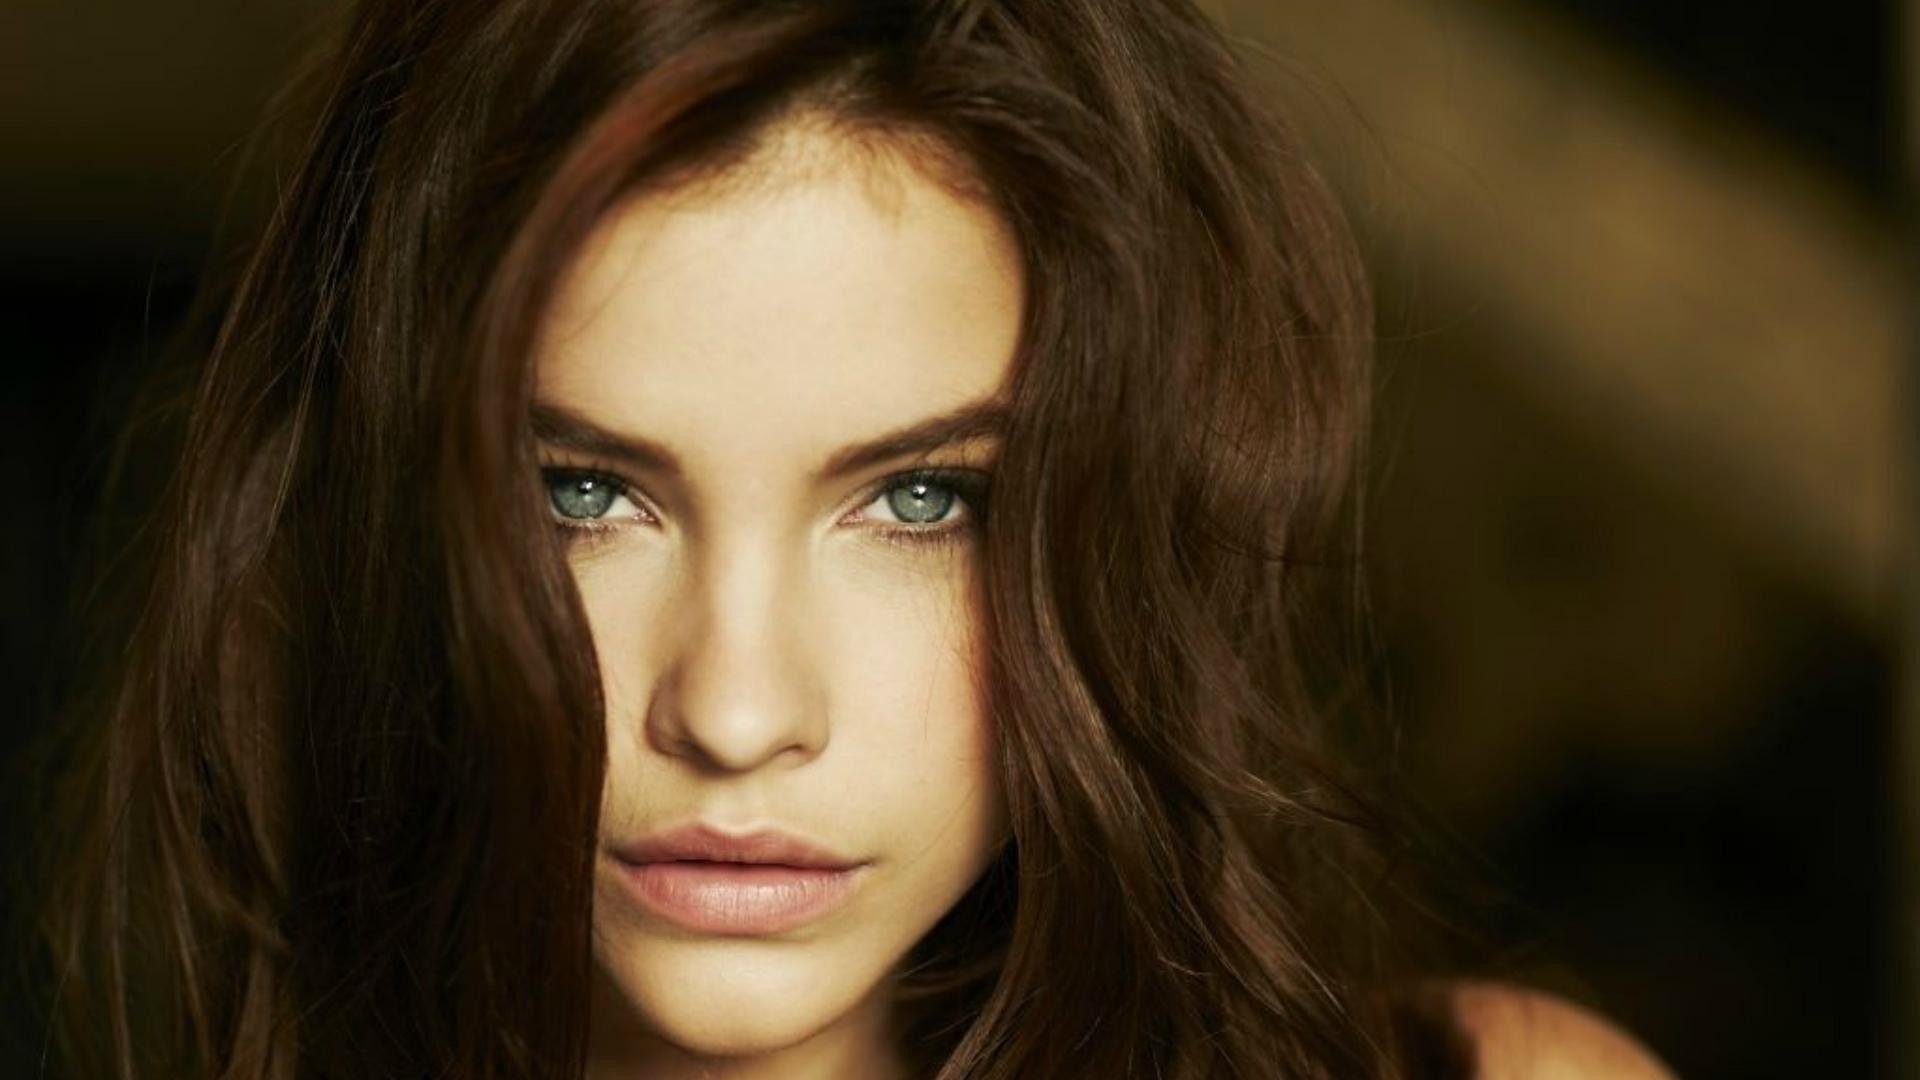 Barbara Palvin Wallpapers | Hd Wallpapers